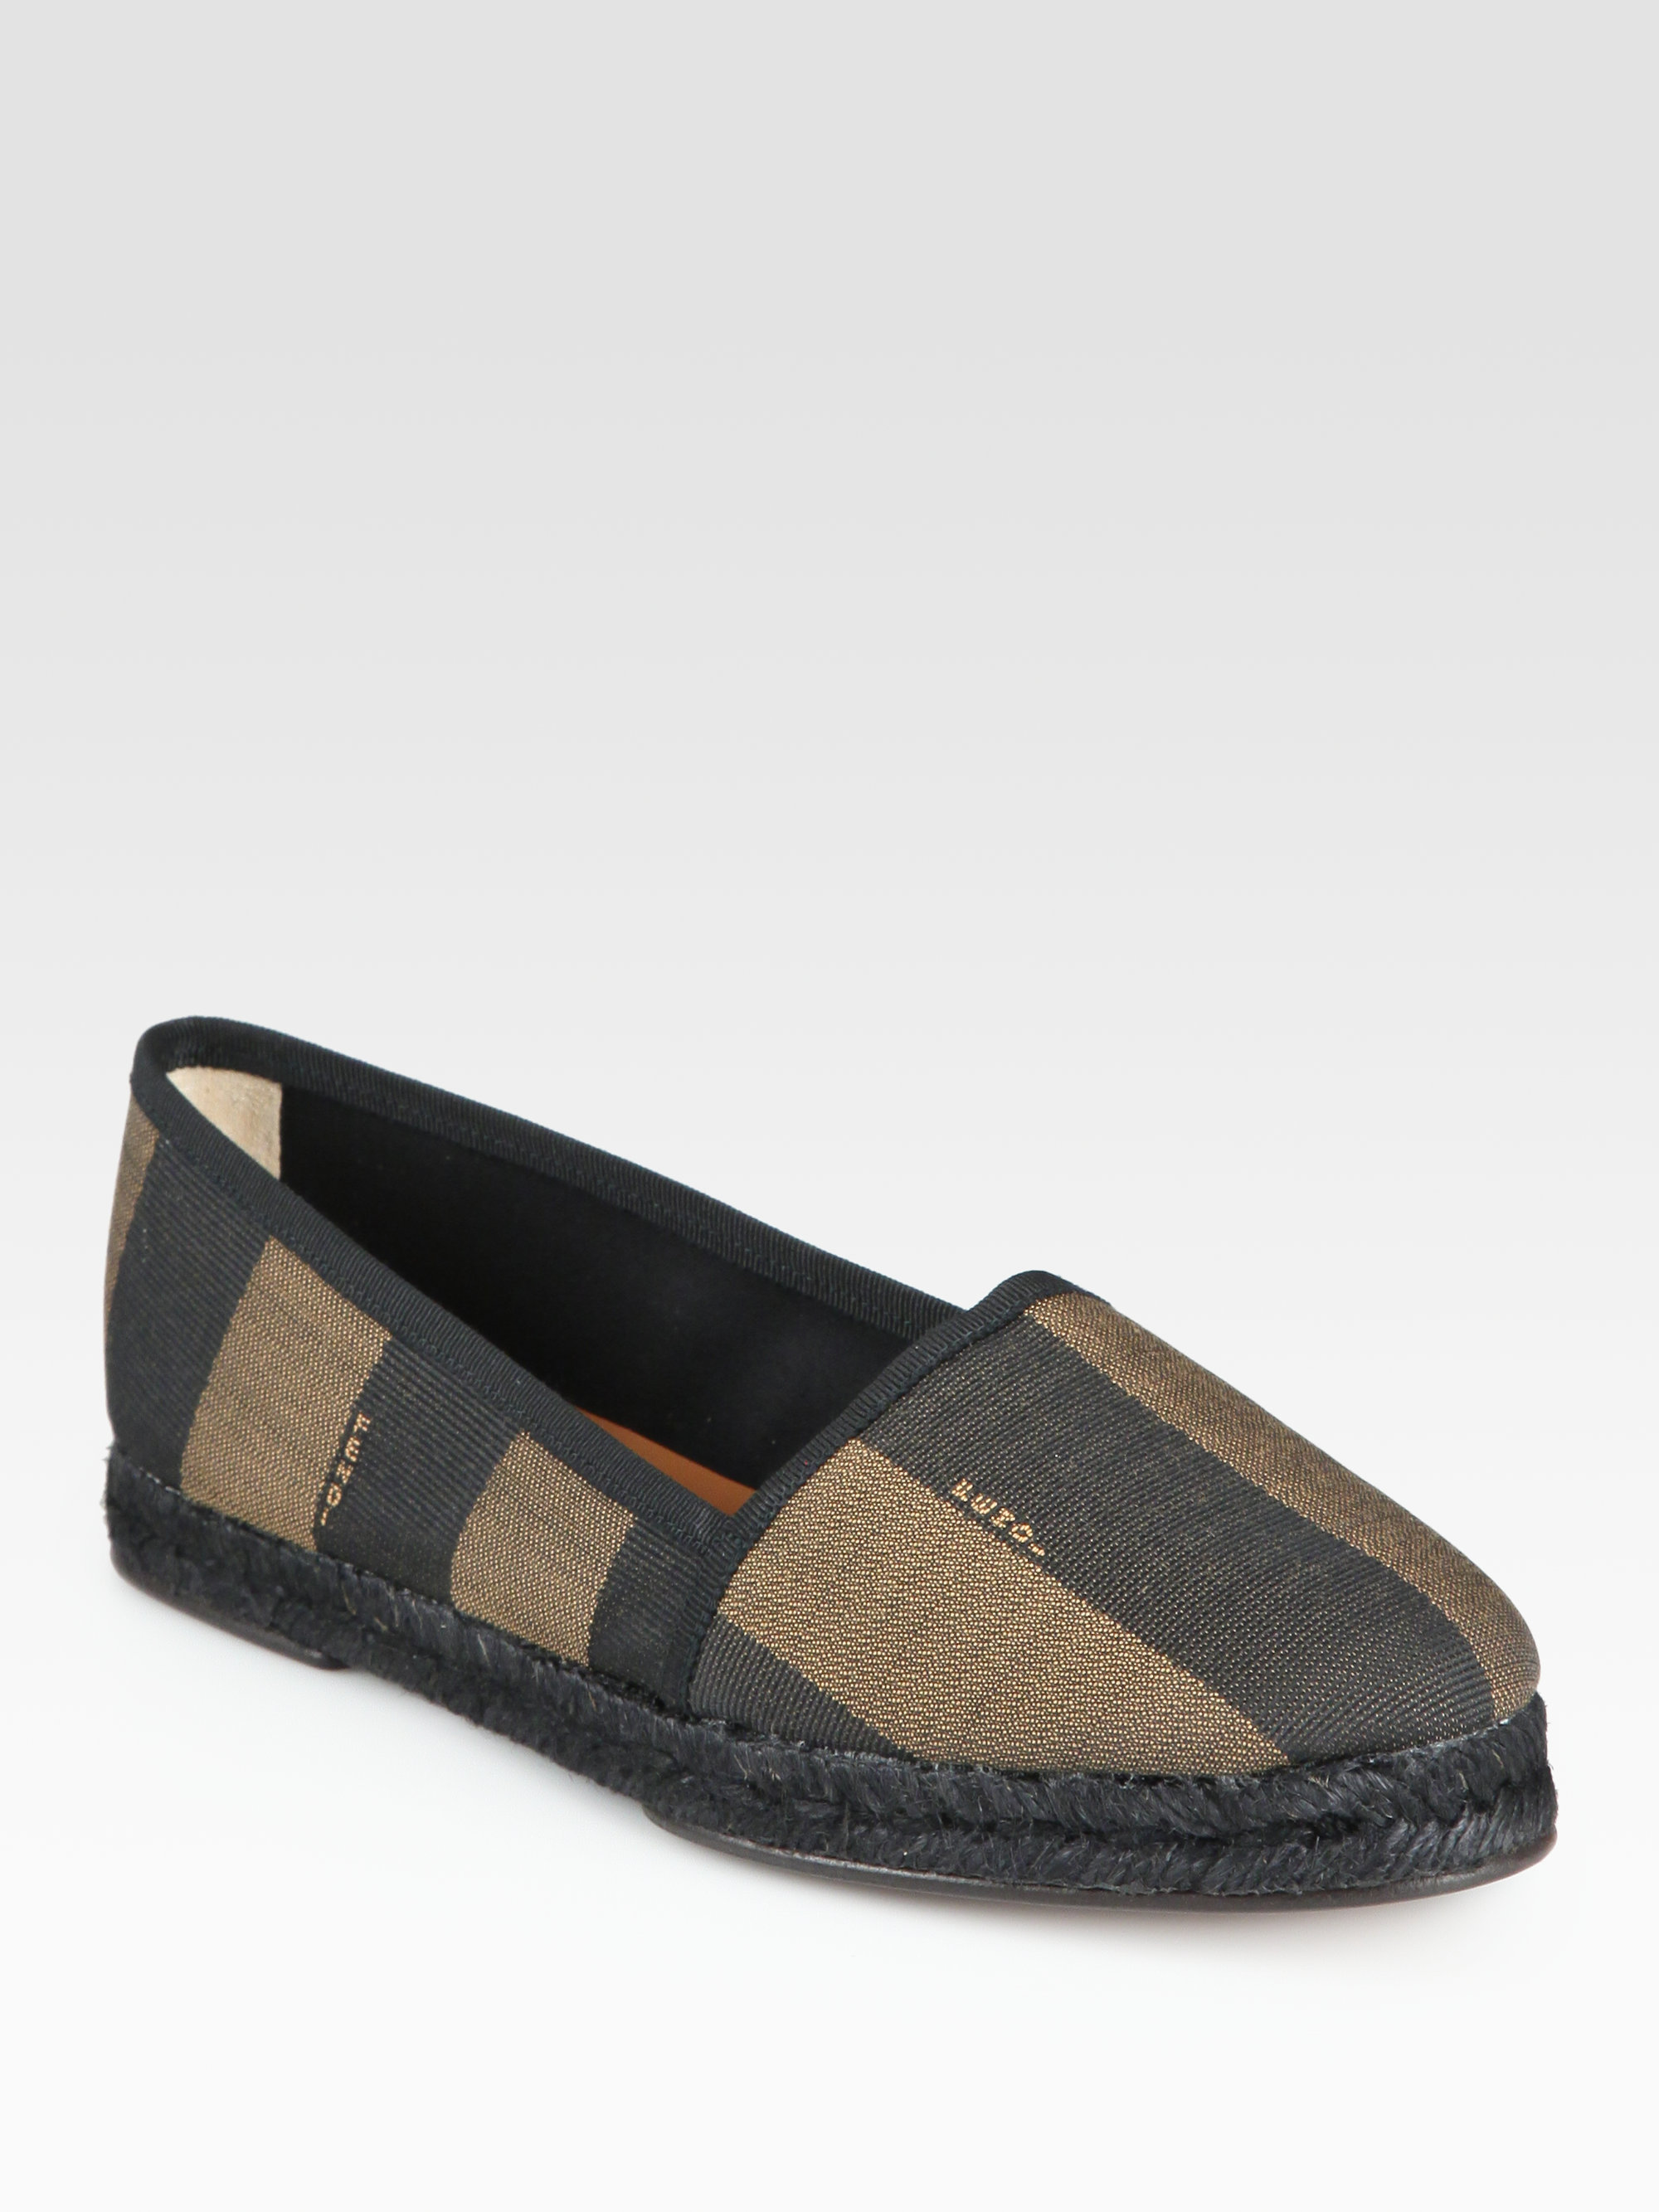 cheap sale professional shipping discount sale Fendi Pequin Espadrille Flats cheap sale nicekicks 53cYMWgE0